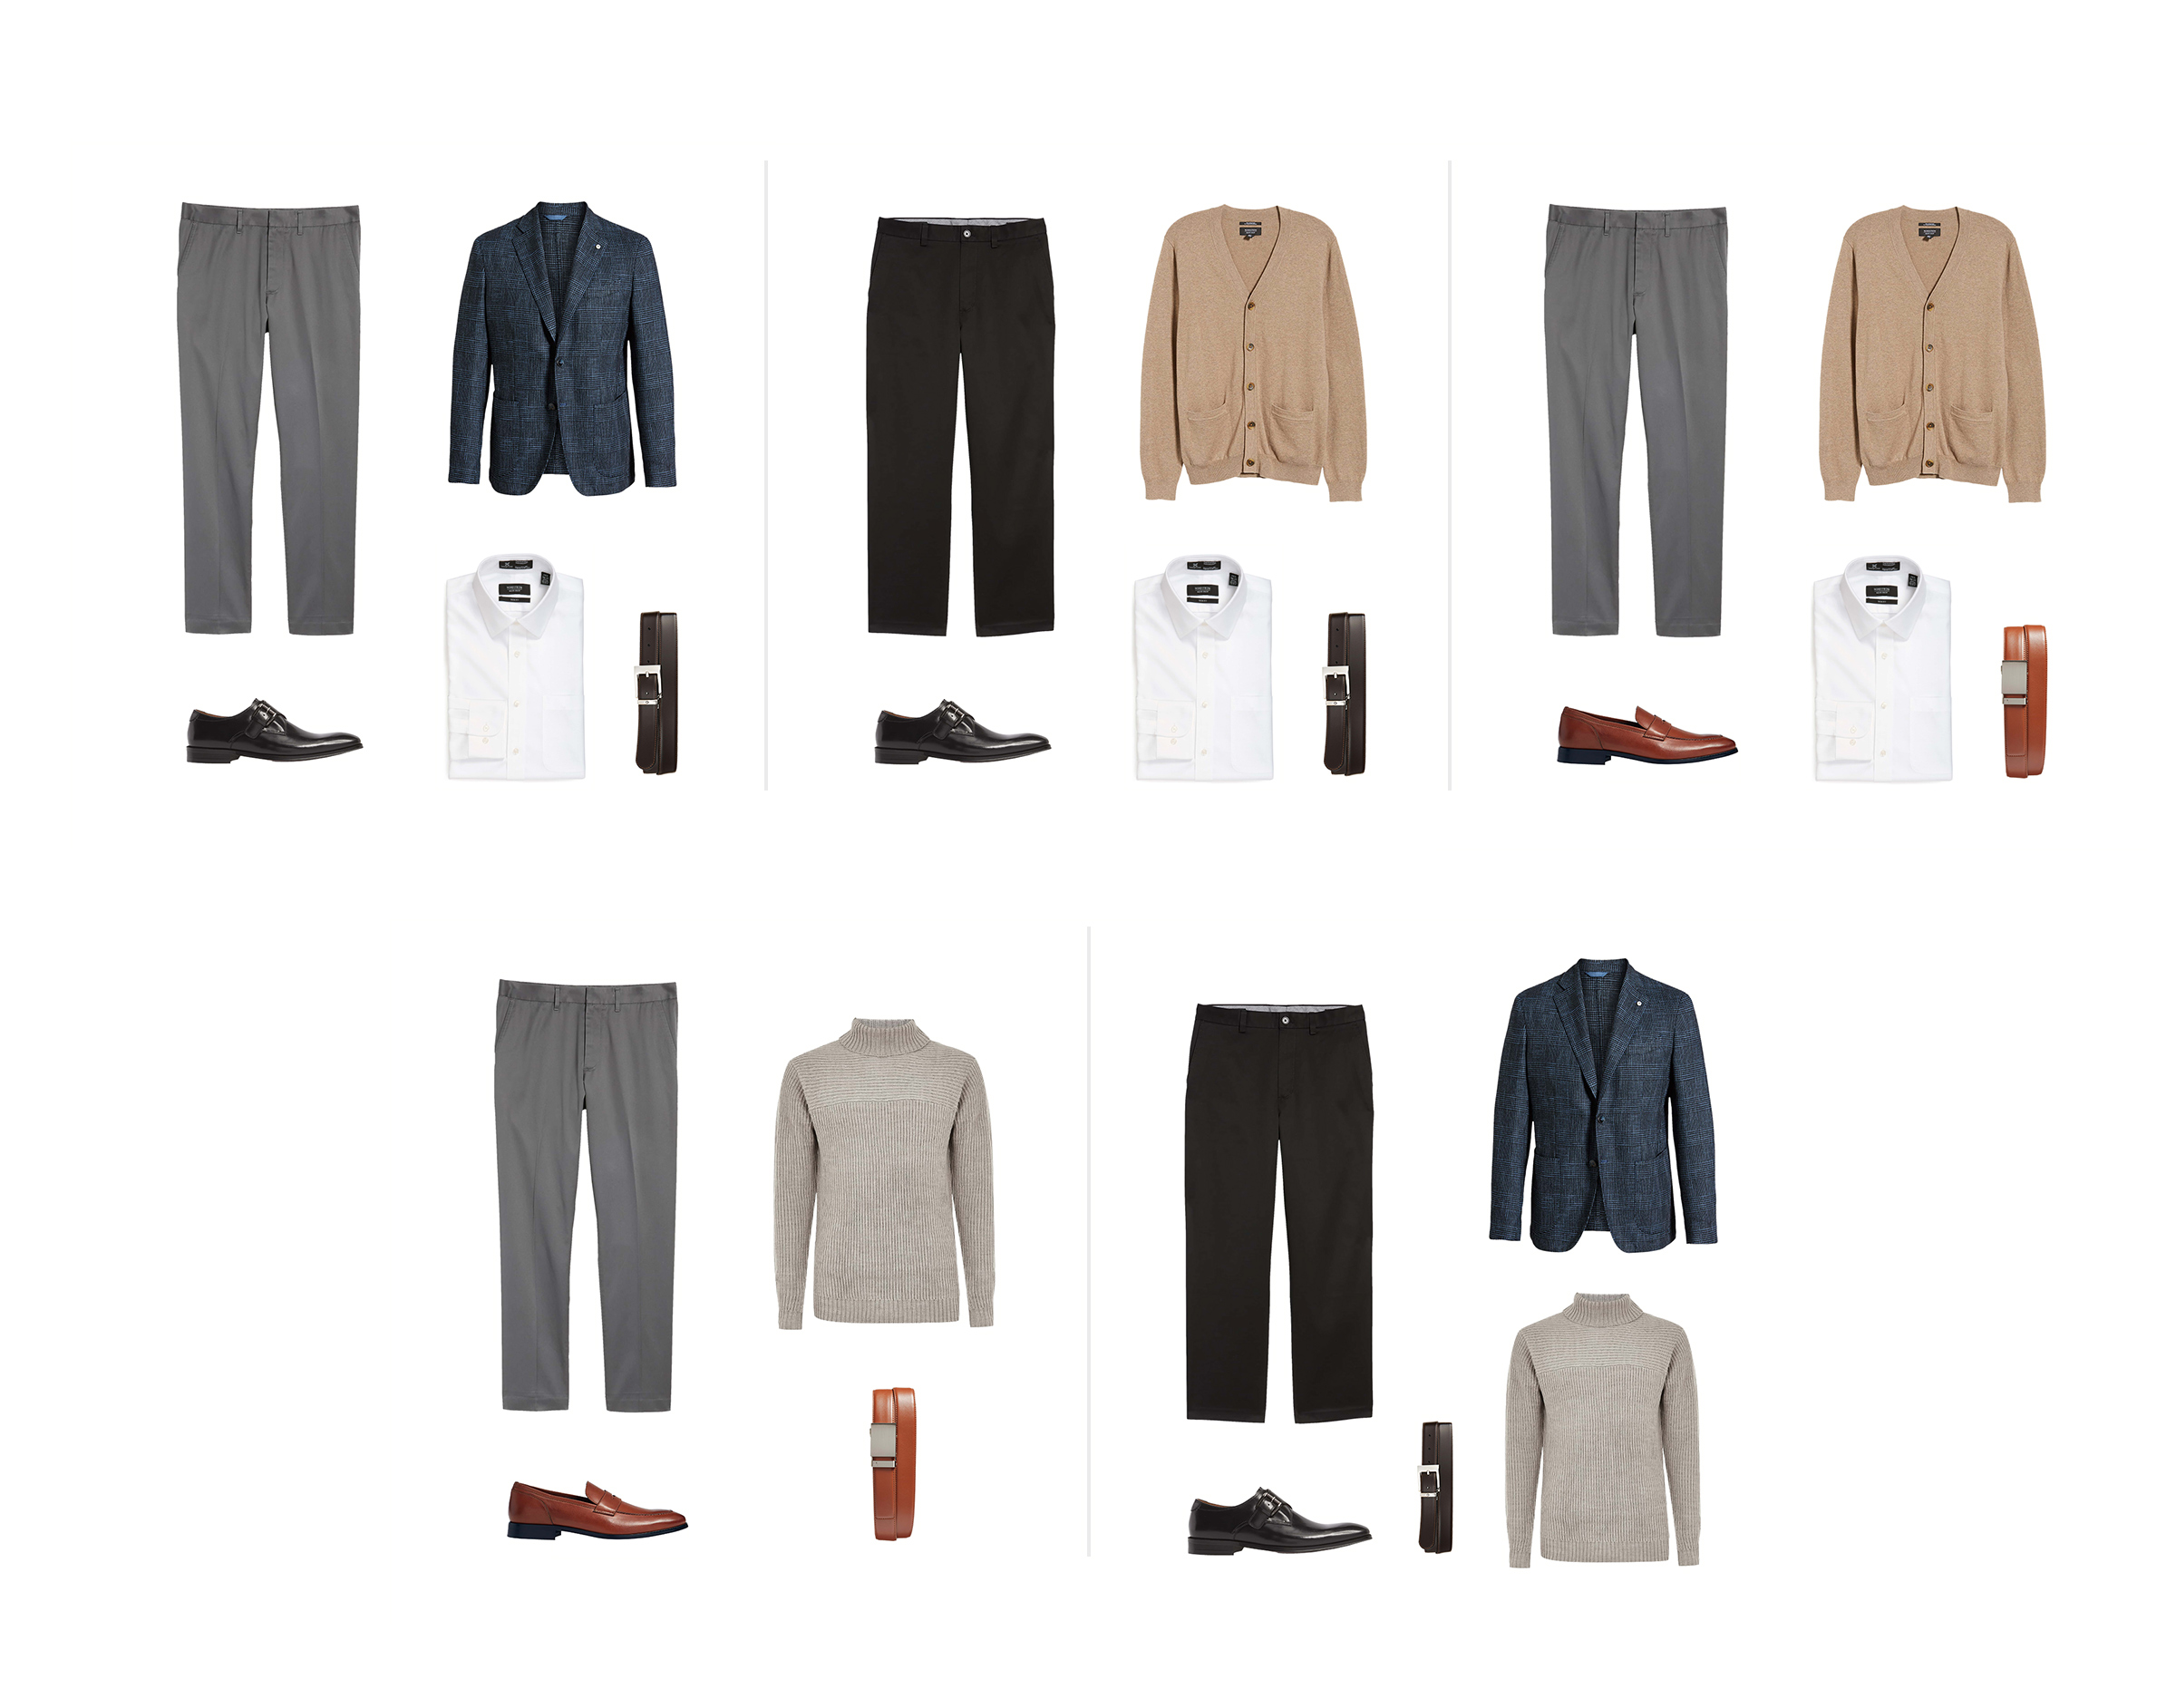 Five wardrobe combinations from the previous image consisting of ten items of professional menswear.